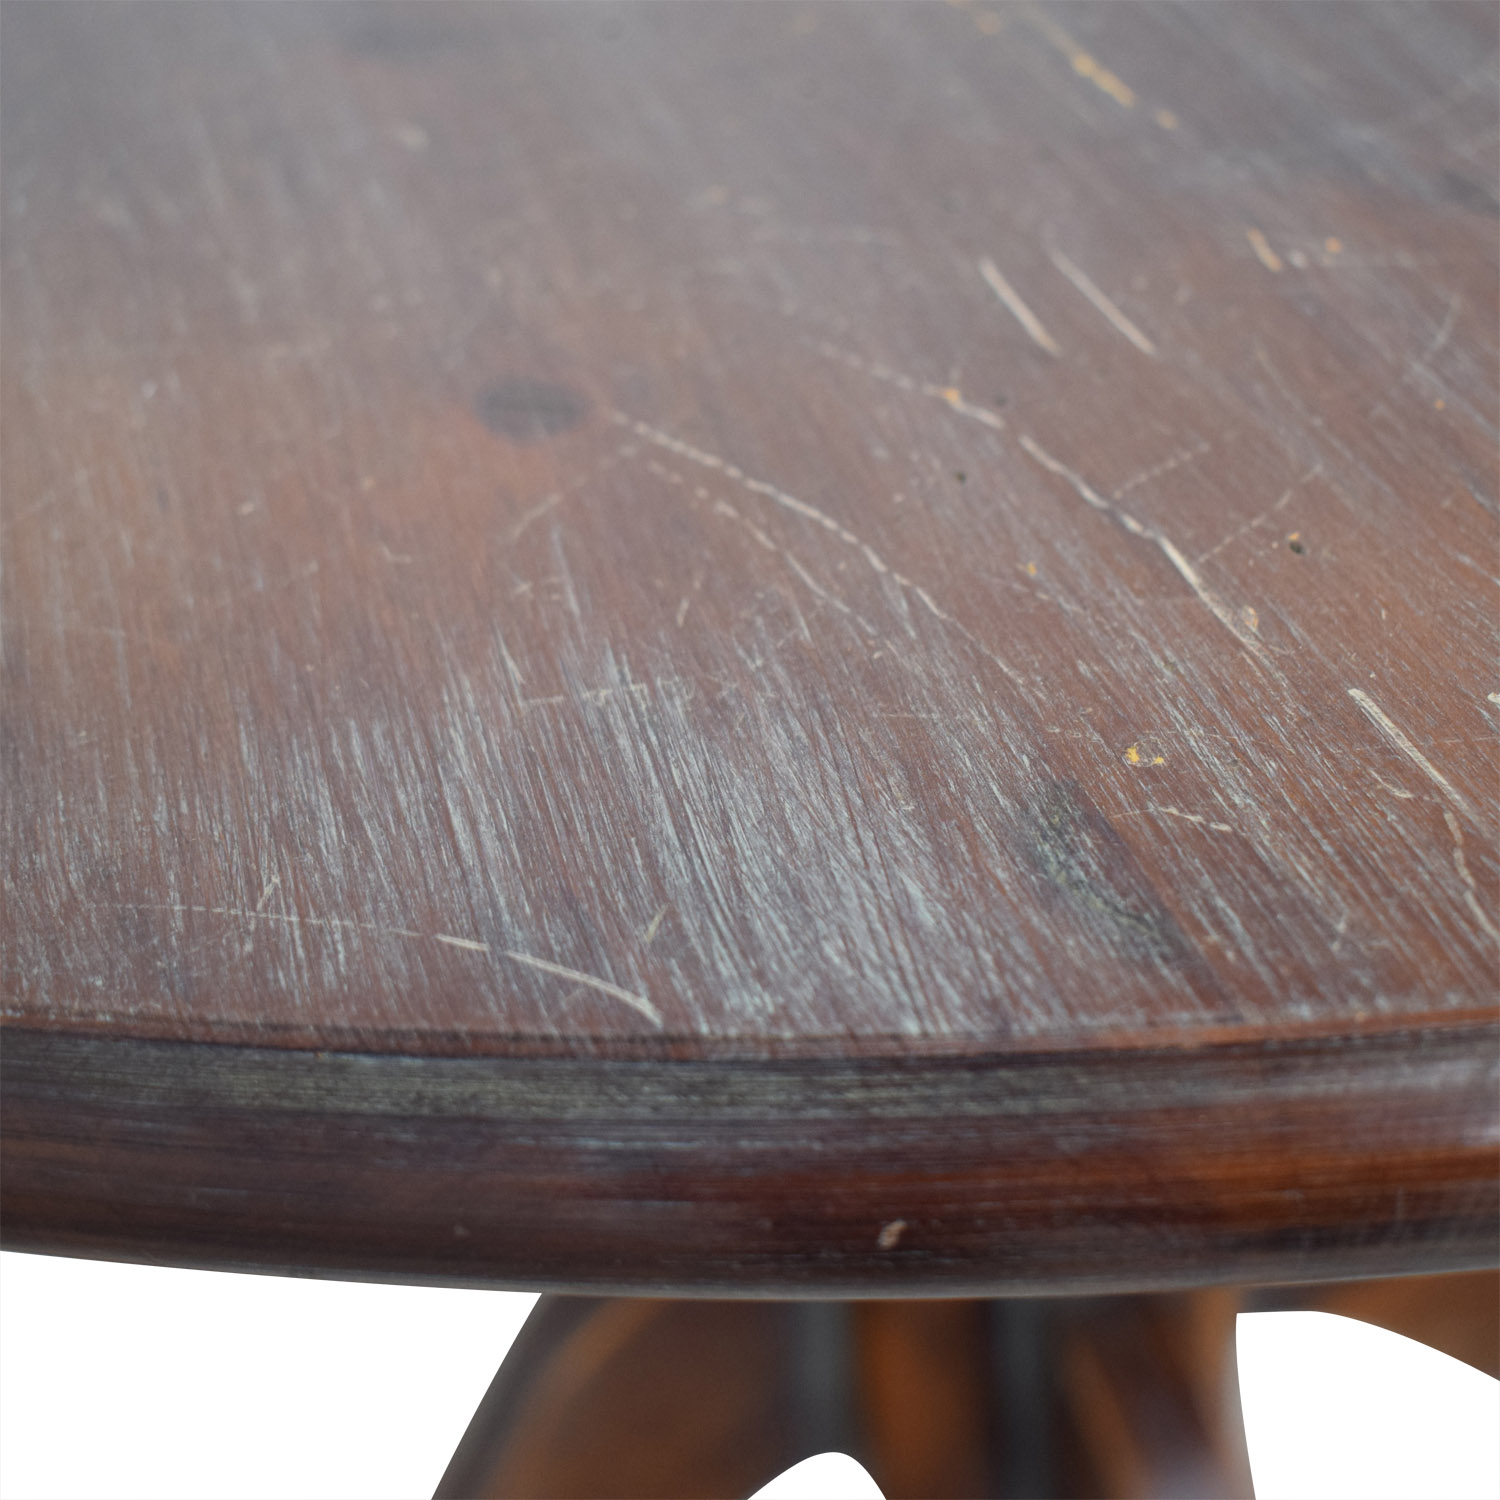 Pottery Barn Pottery Barn Round Wood Pedestal Dining Table price